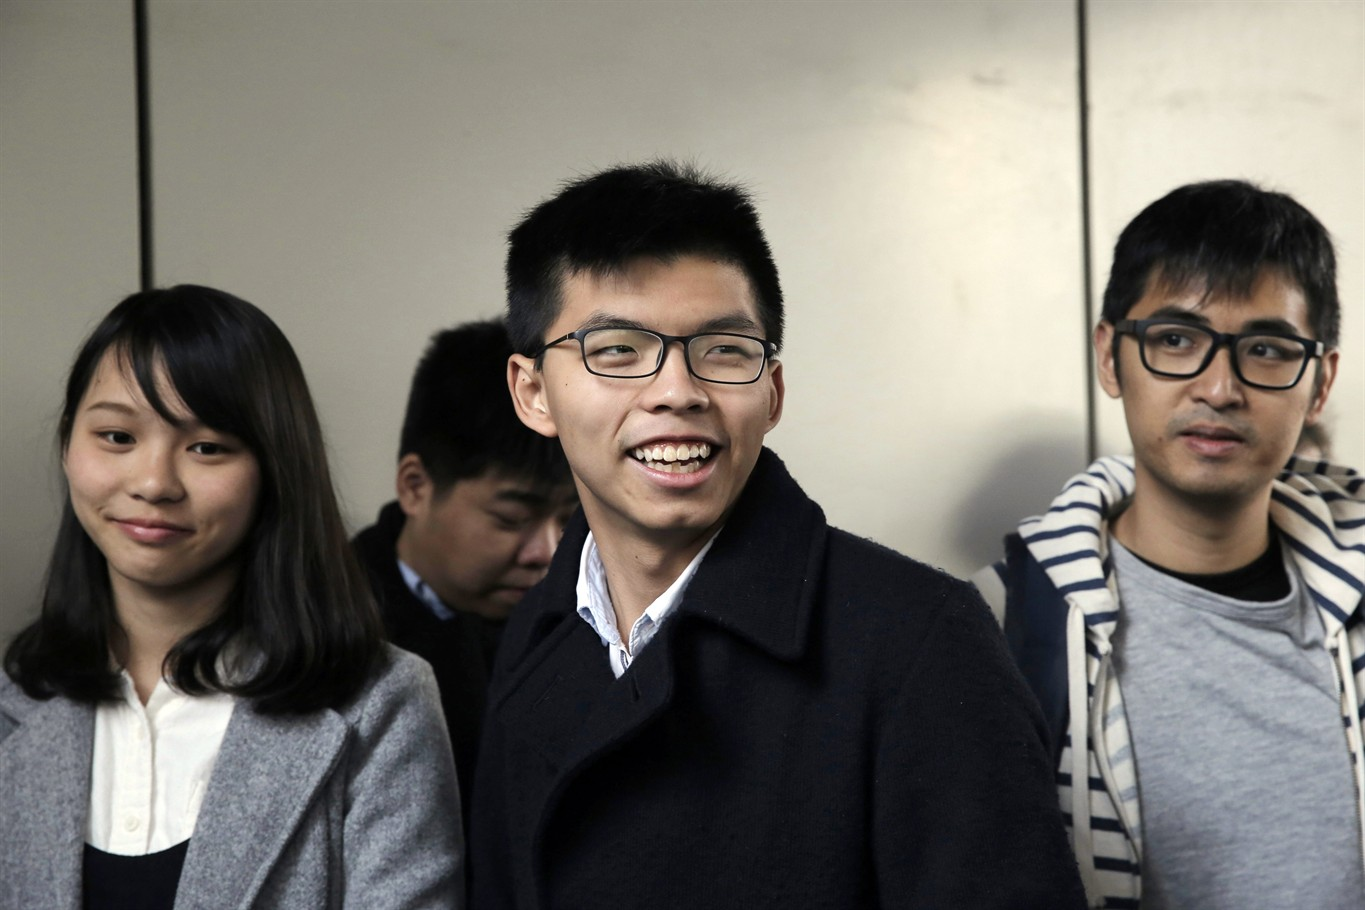 Hong Kong democracy leader Joshua Wong jailed for second time